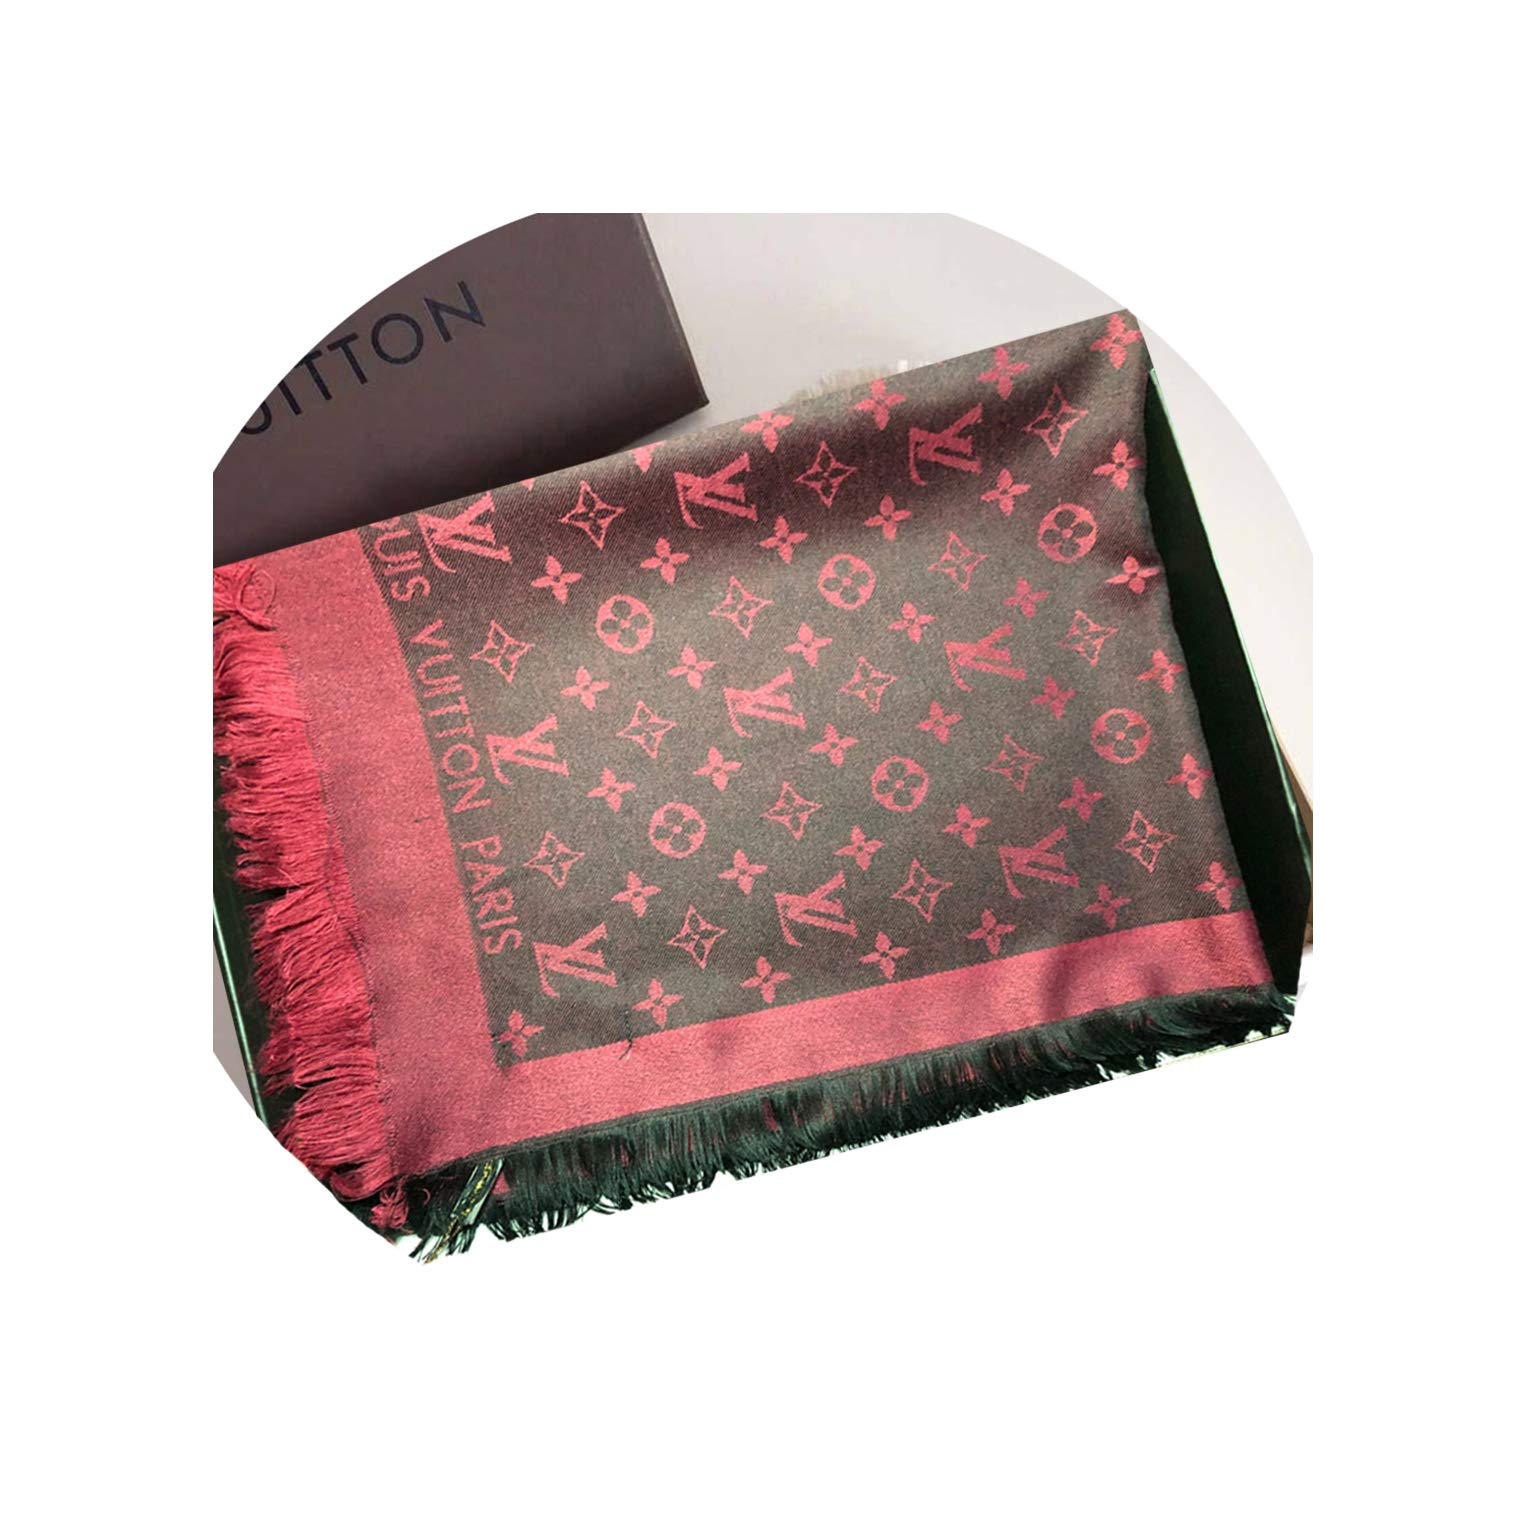 SCOOBEE Fashion Luxury Cashmere/Wool Scarf Rose Black Warm Large Square Scarves for Women Men